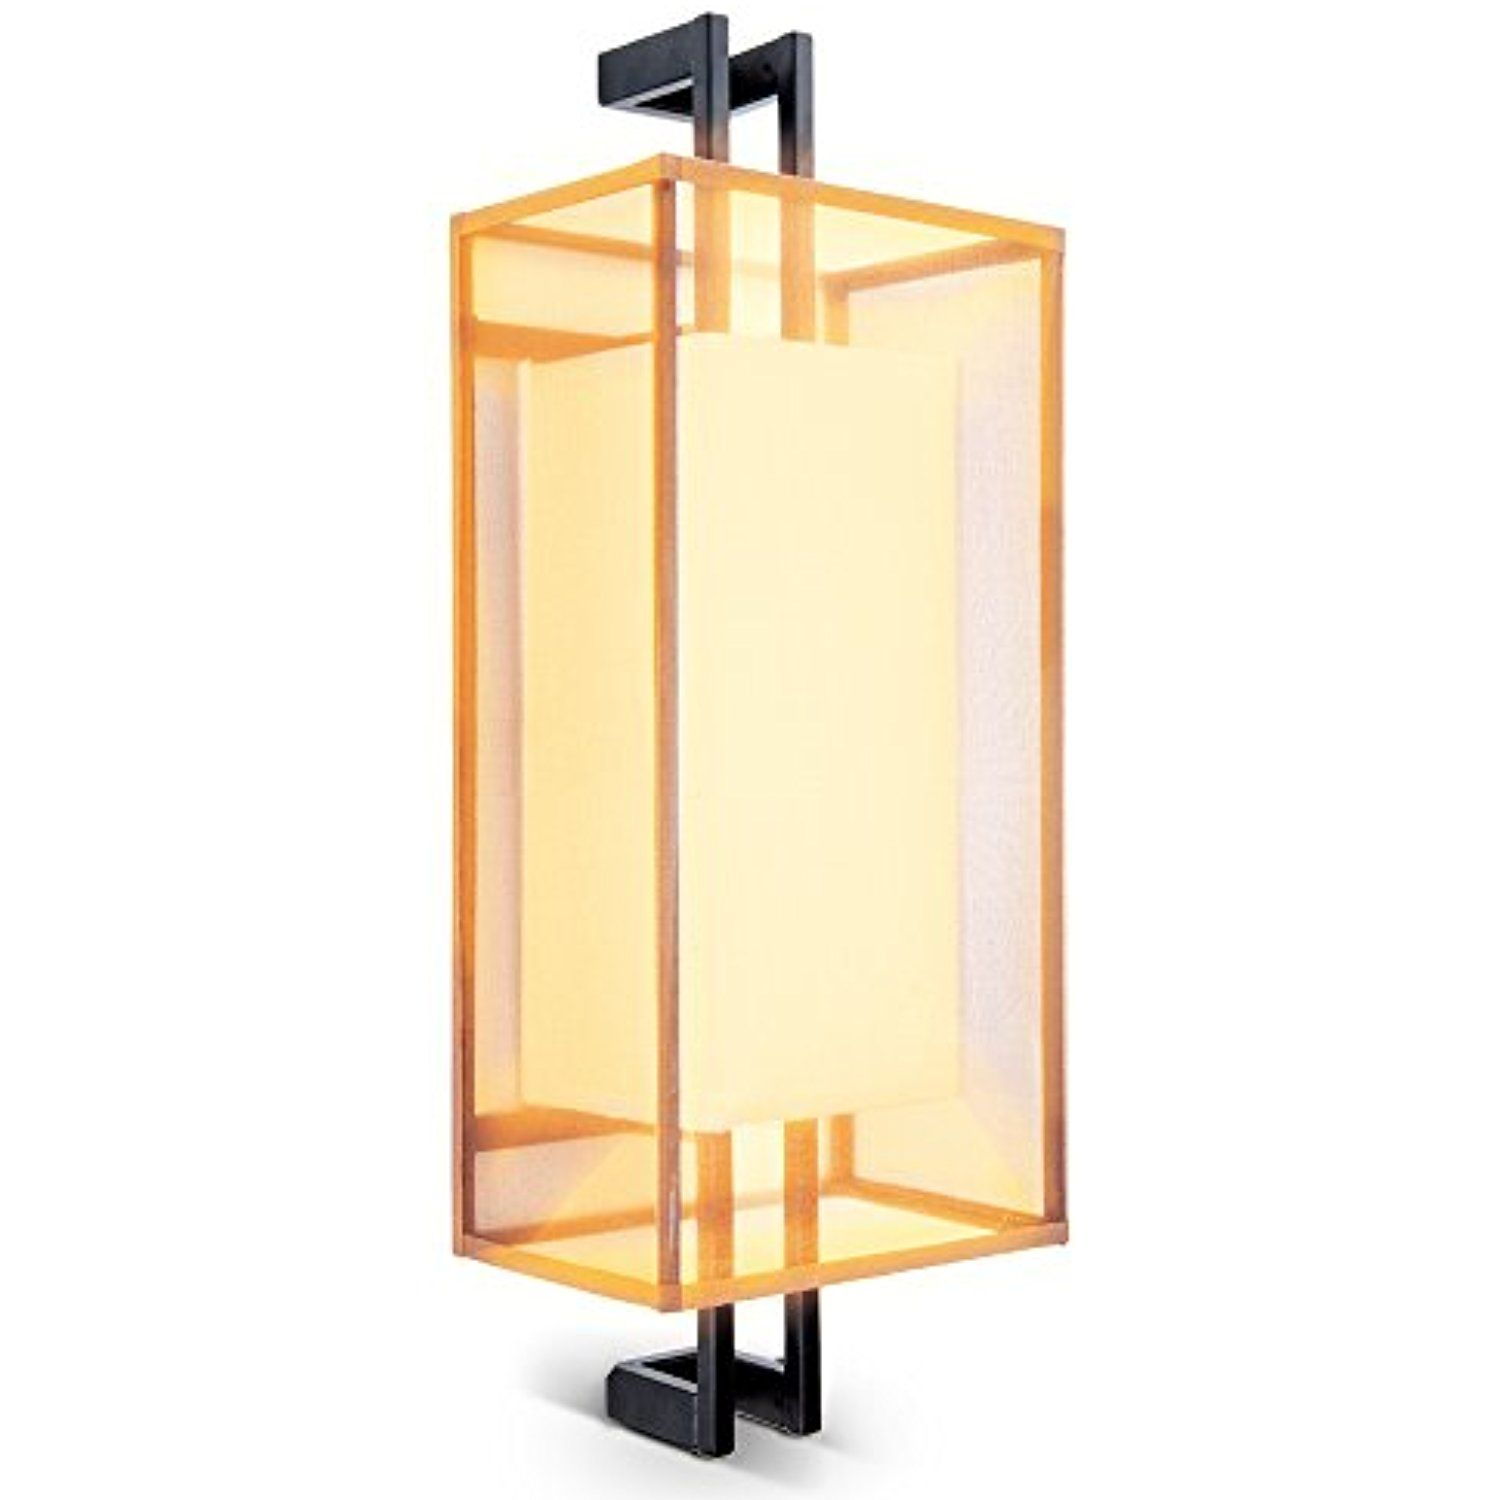 Veesee Wall Lamps Sconces Loft Modern 19 Inches Passage Home Decor ...